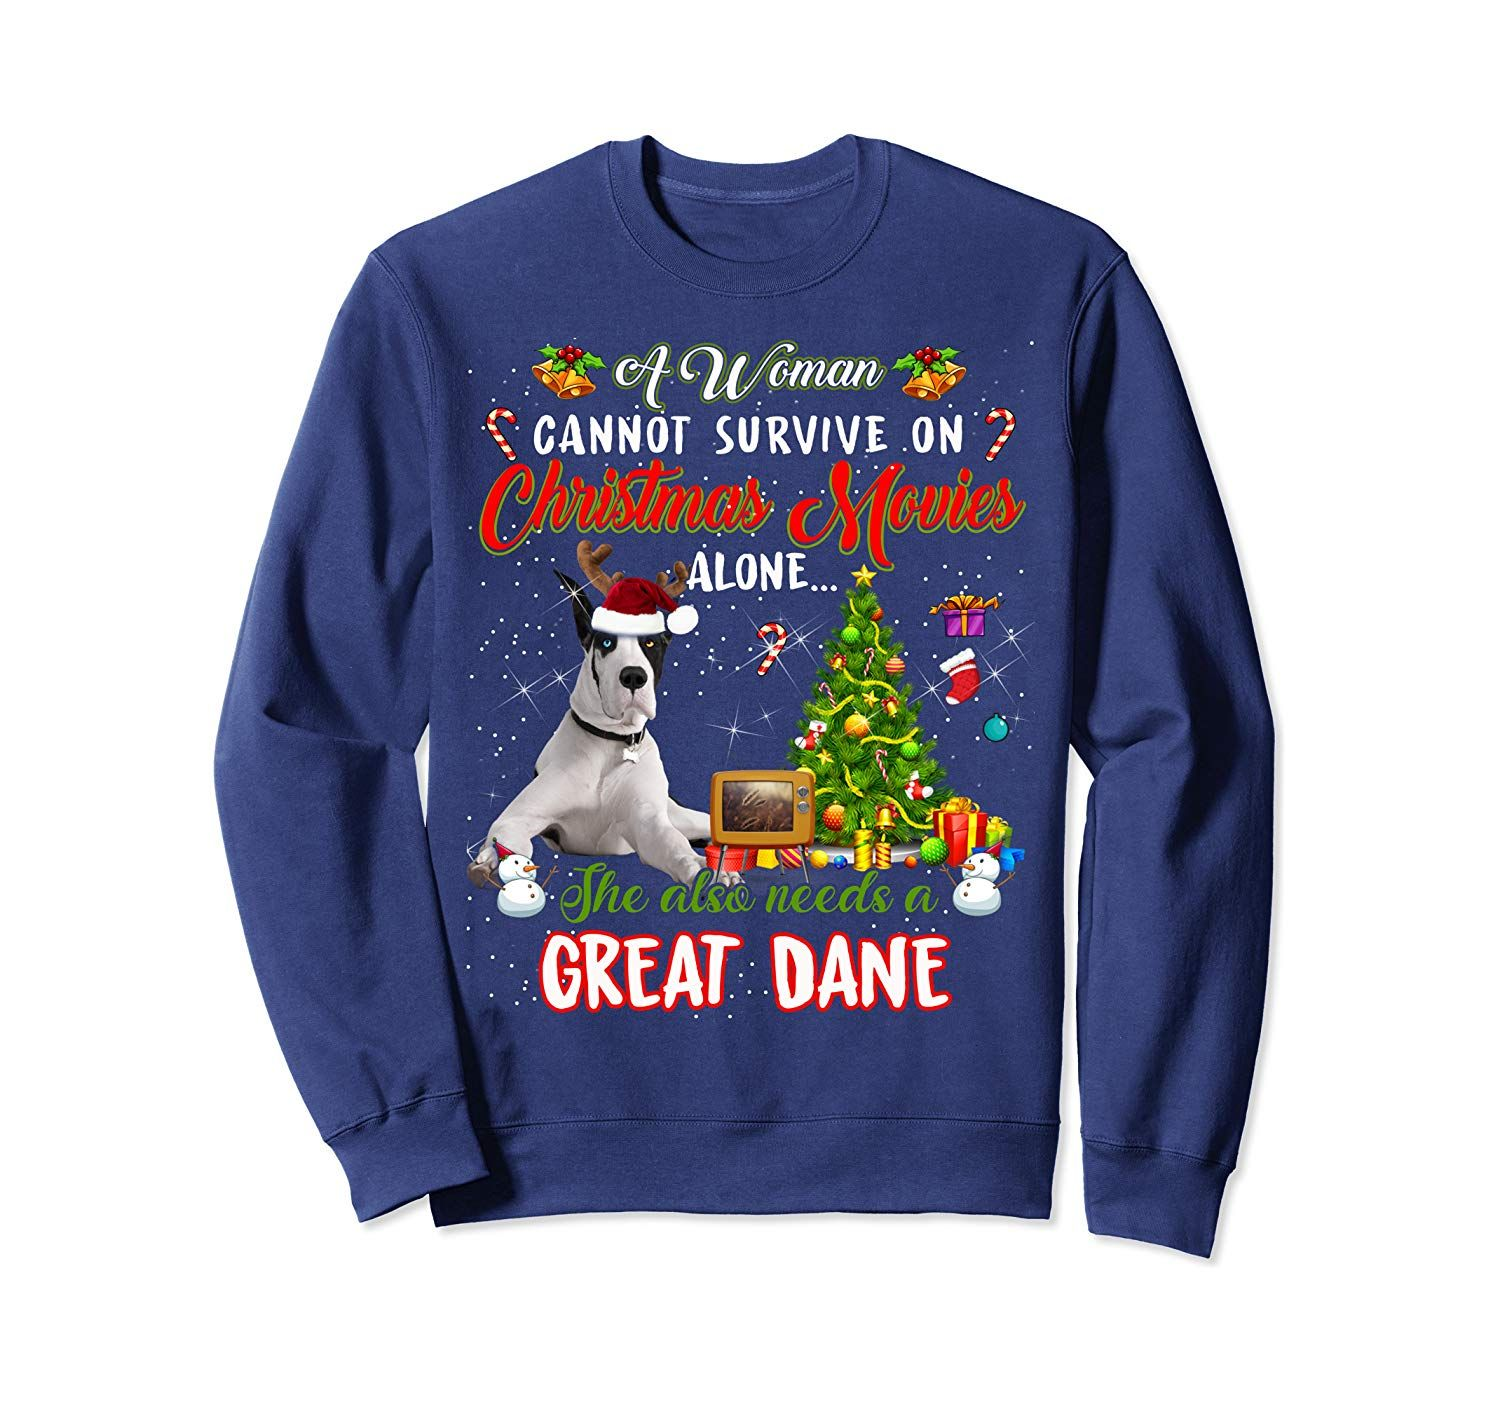 Christmas Movies Alone She Needs A Great Dane Xmas Sweatshirt In